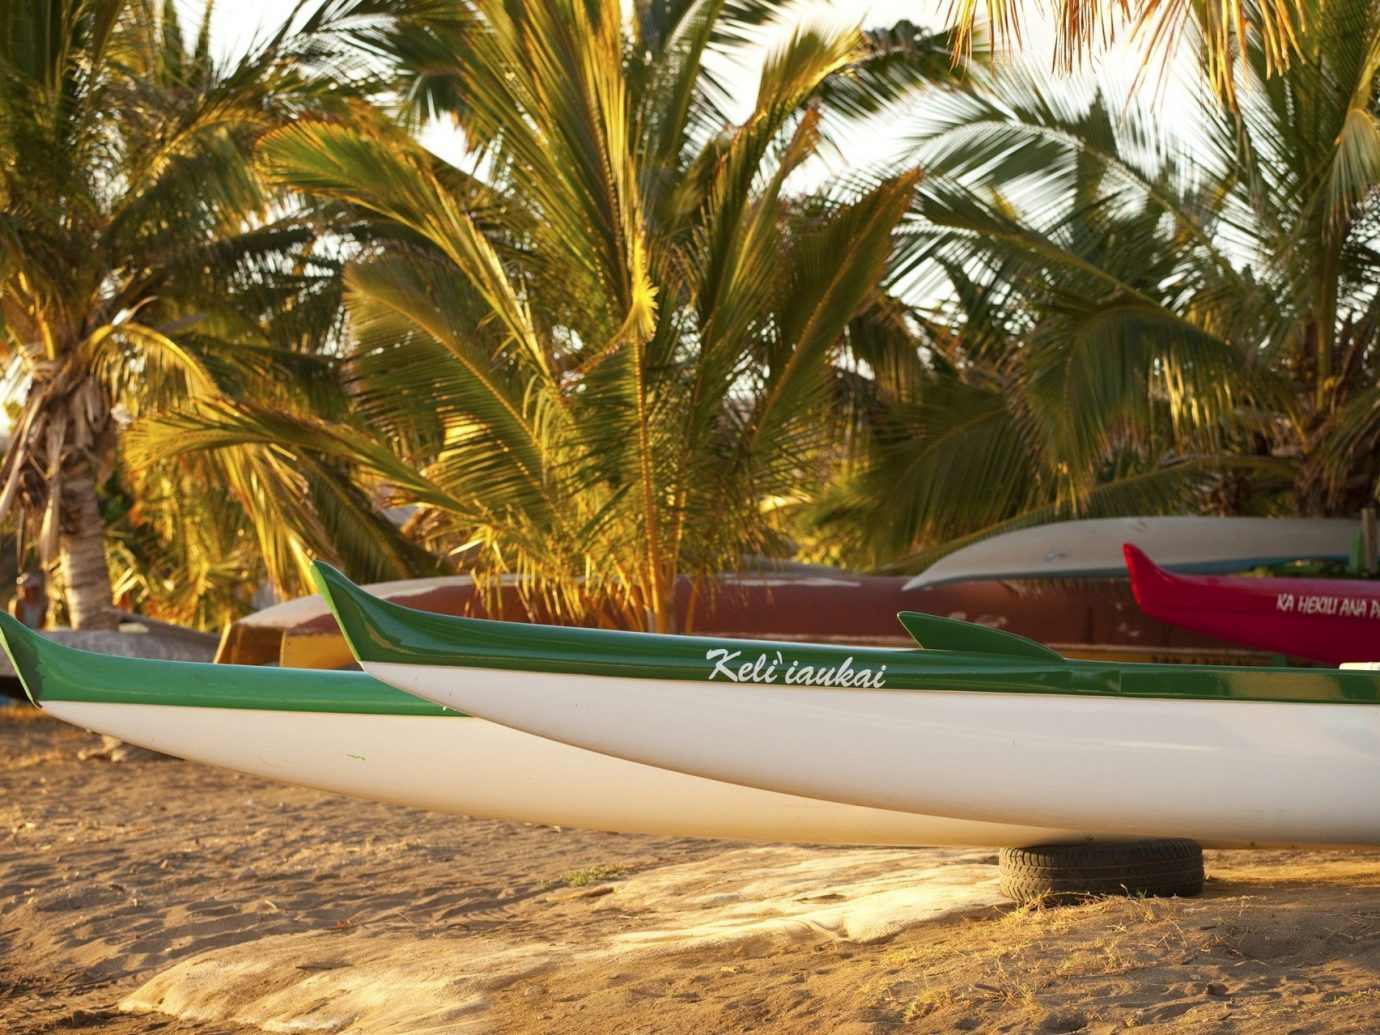 Trip Ideas tree ground outdoor green plane Boat palm vehicle boating vacation Beach plant Sea watercraft sailing vessel sandy Forest land